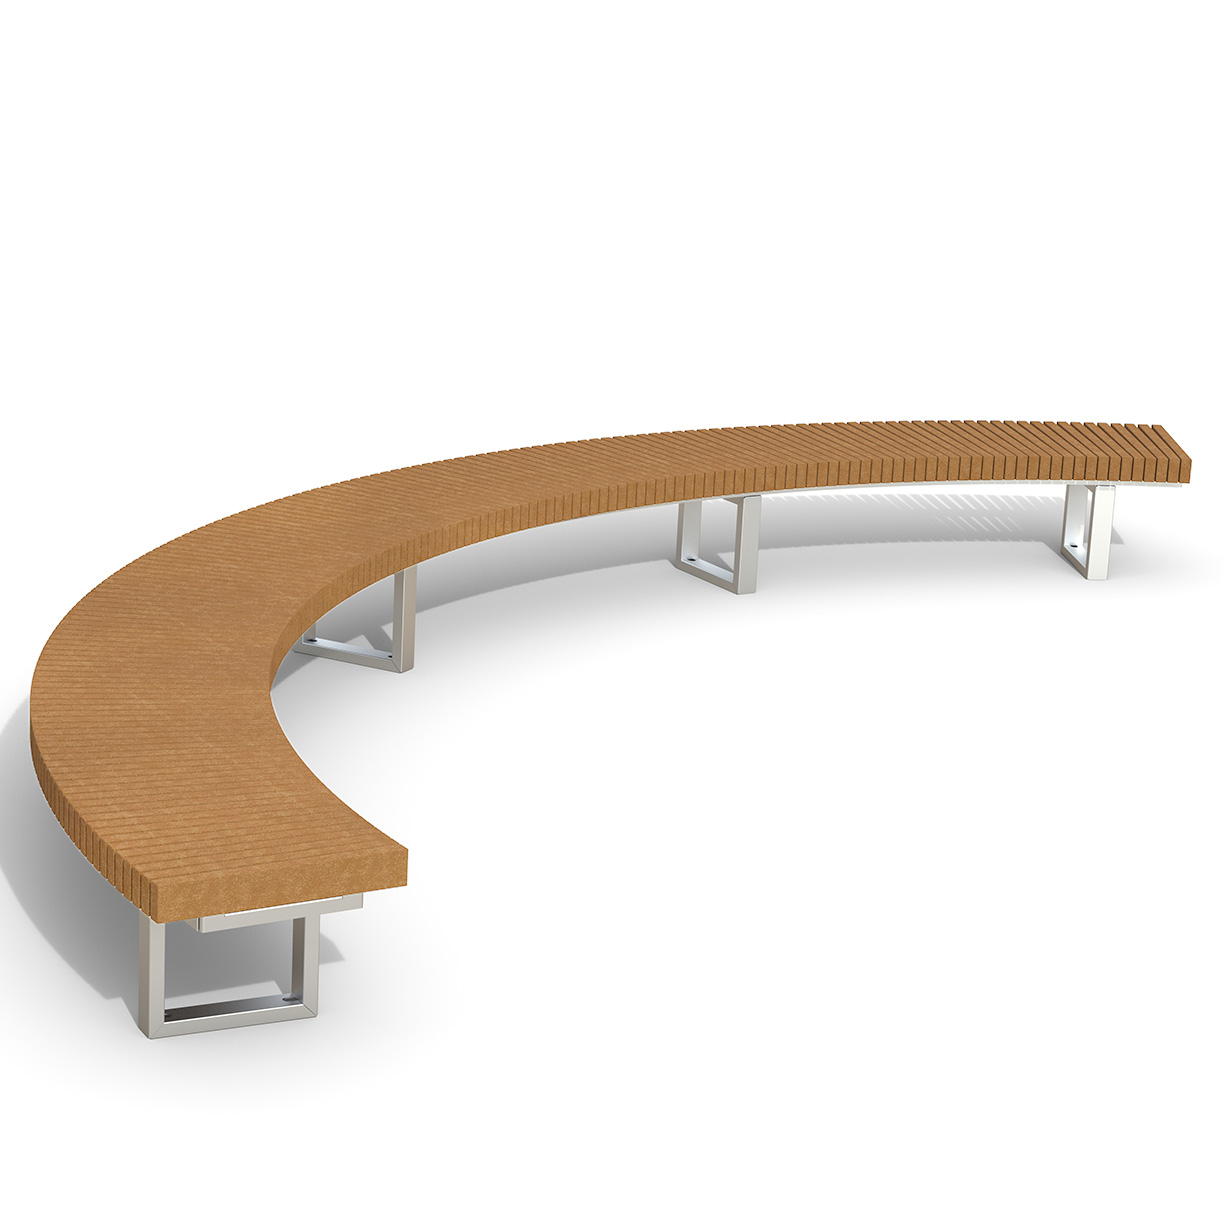 INF24C12120R  Infinity Collection 12' Radius / 120 Degree Curved Recycled Plastic Bench